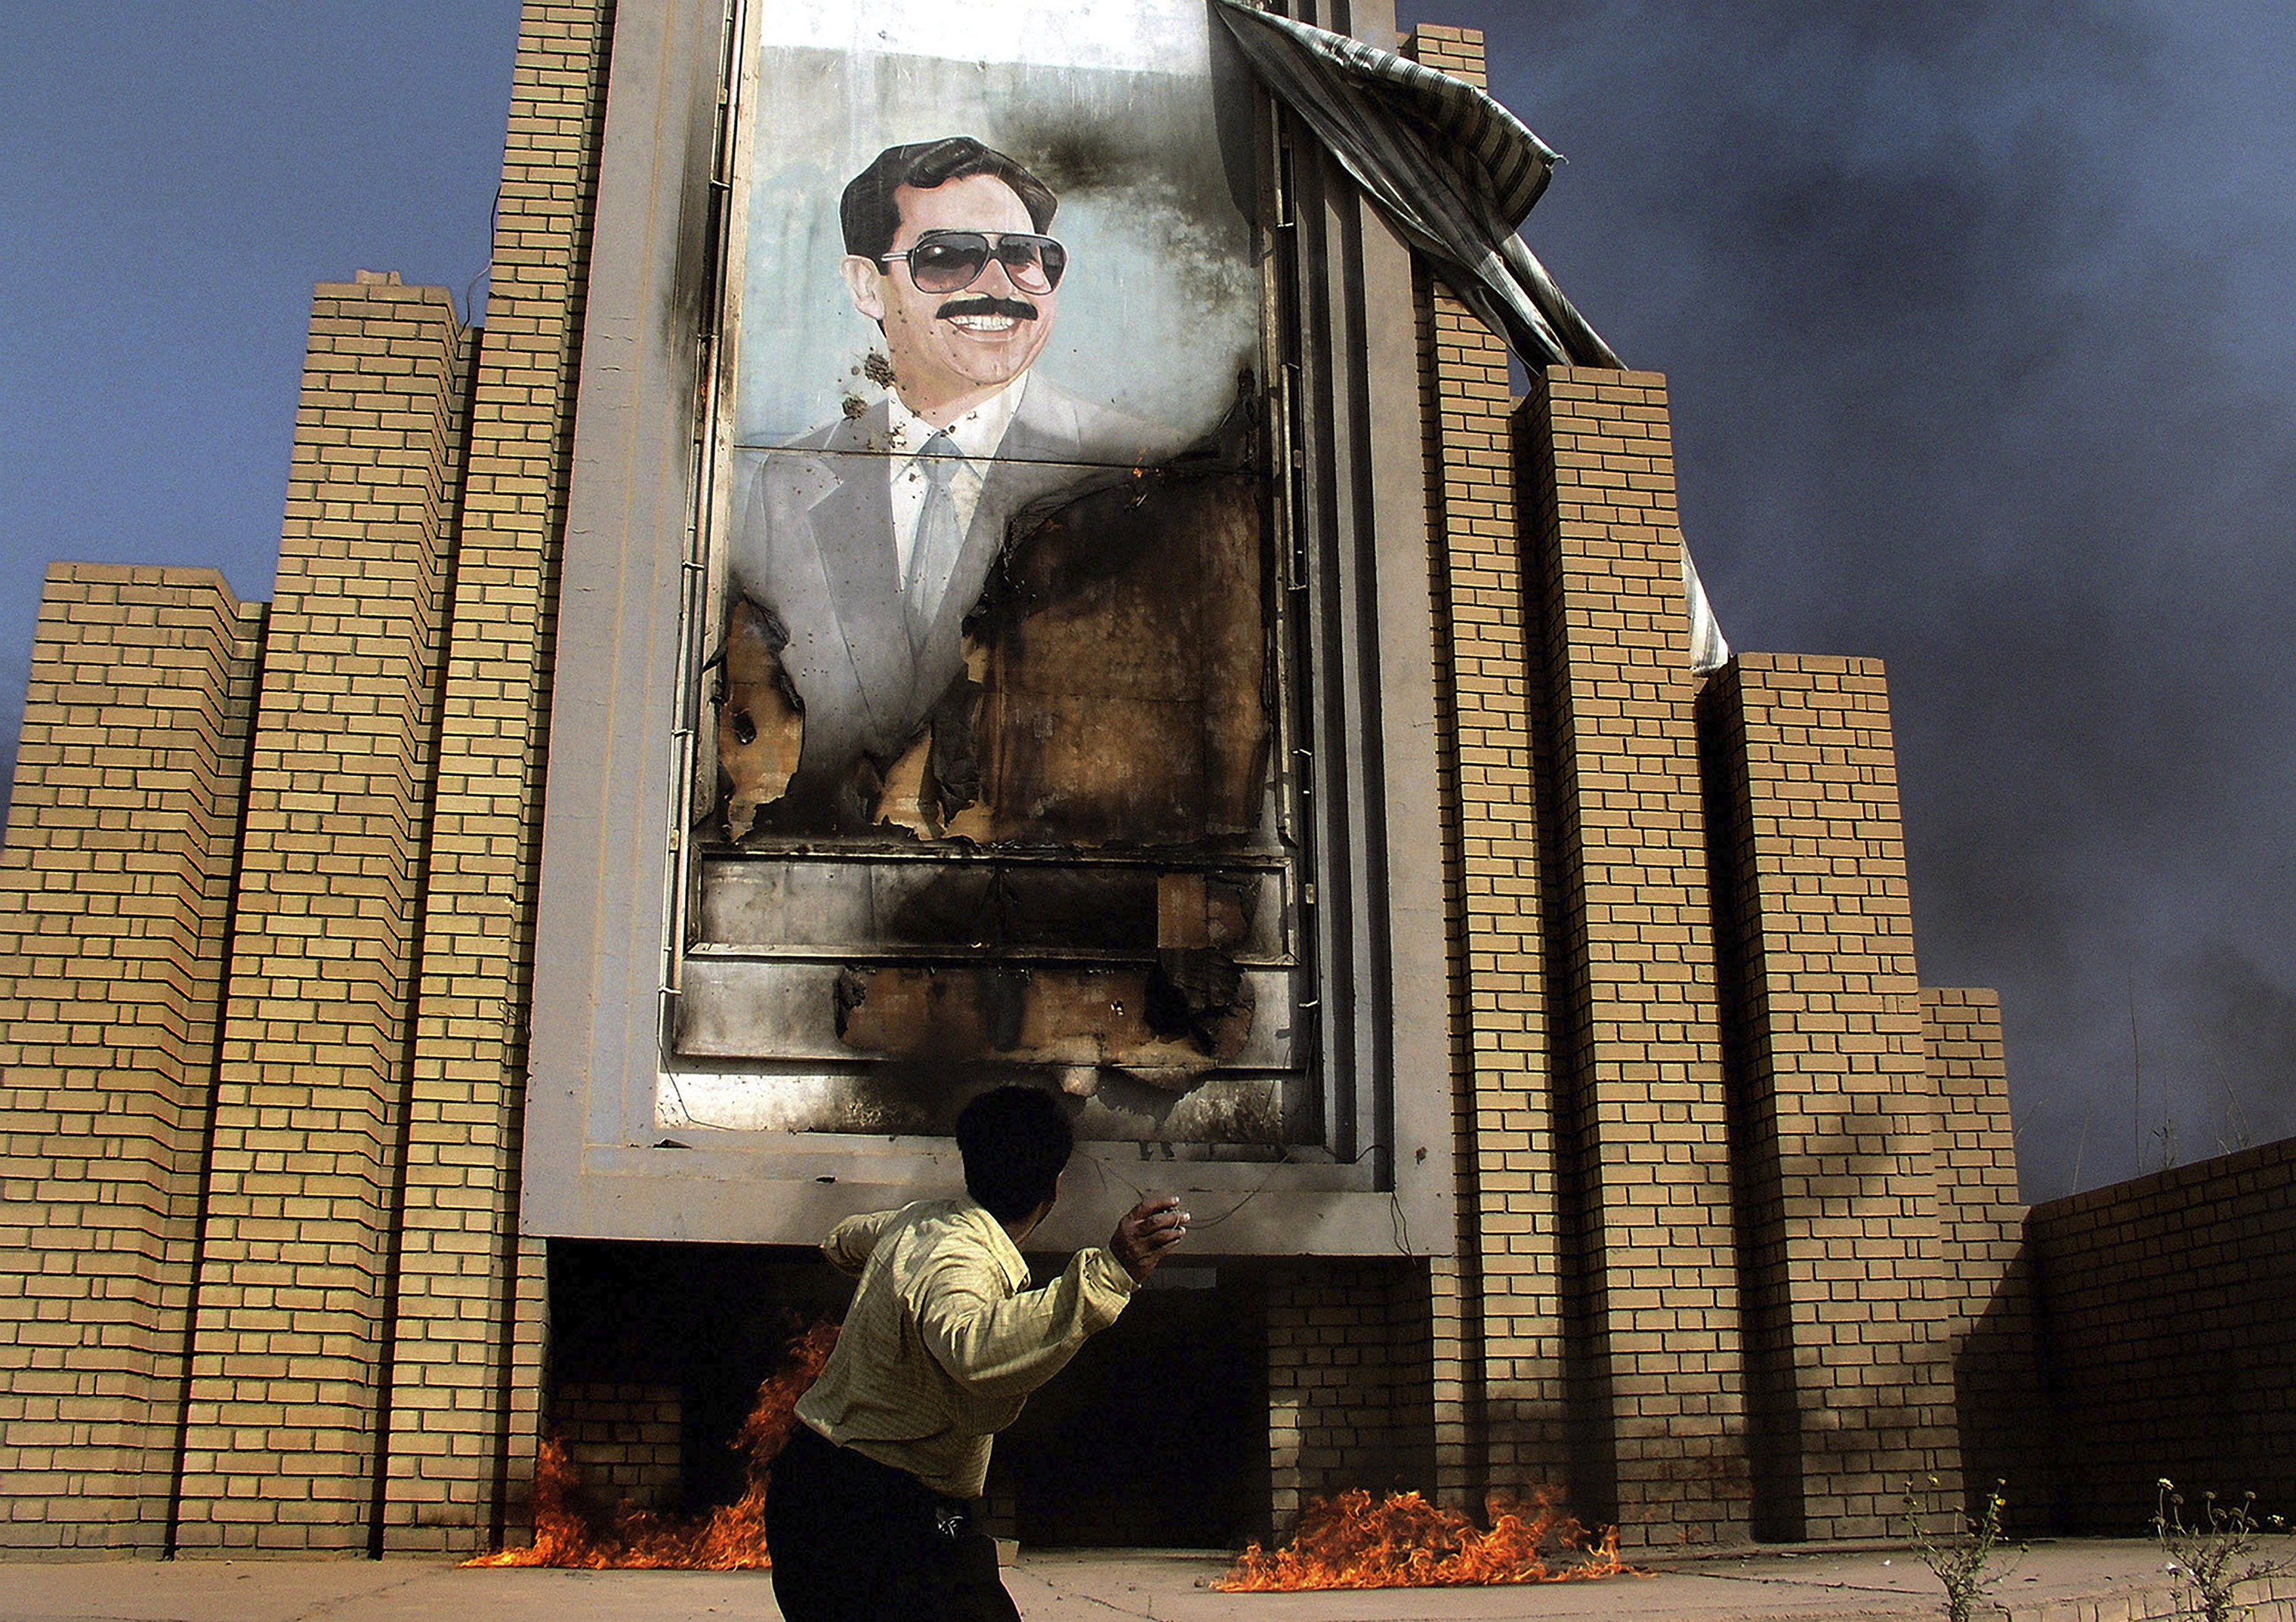 People burn and throw stones at a poster of Saddam Hussein in Baghdad, Iraq, on April 10, 2003.